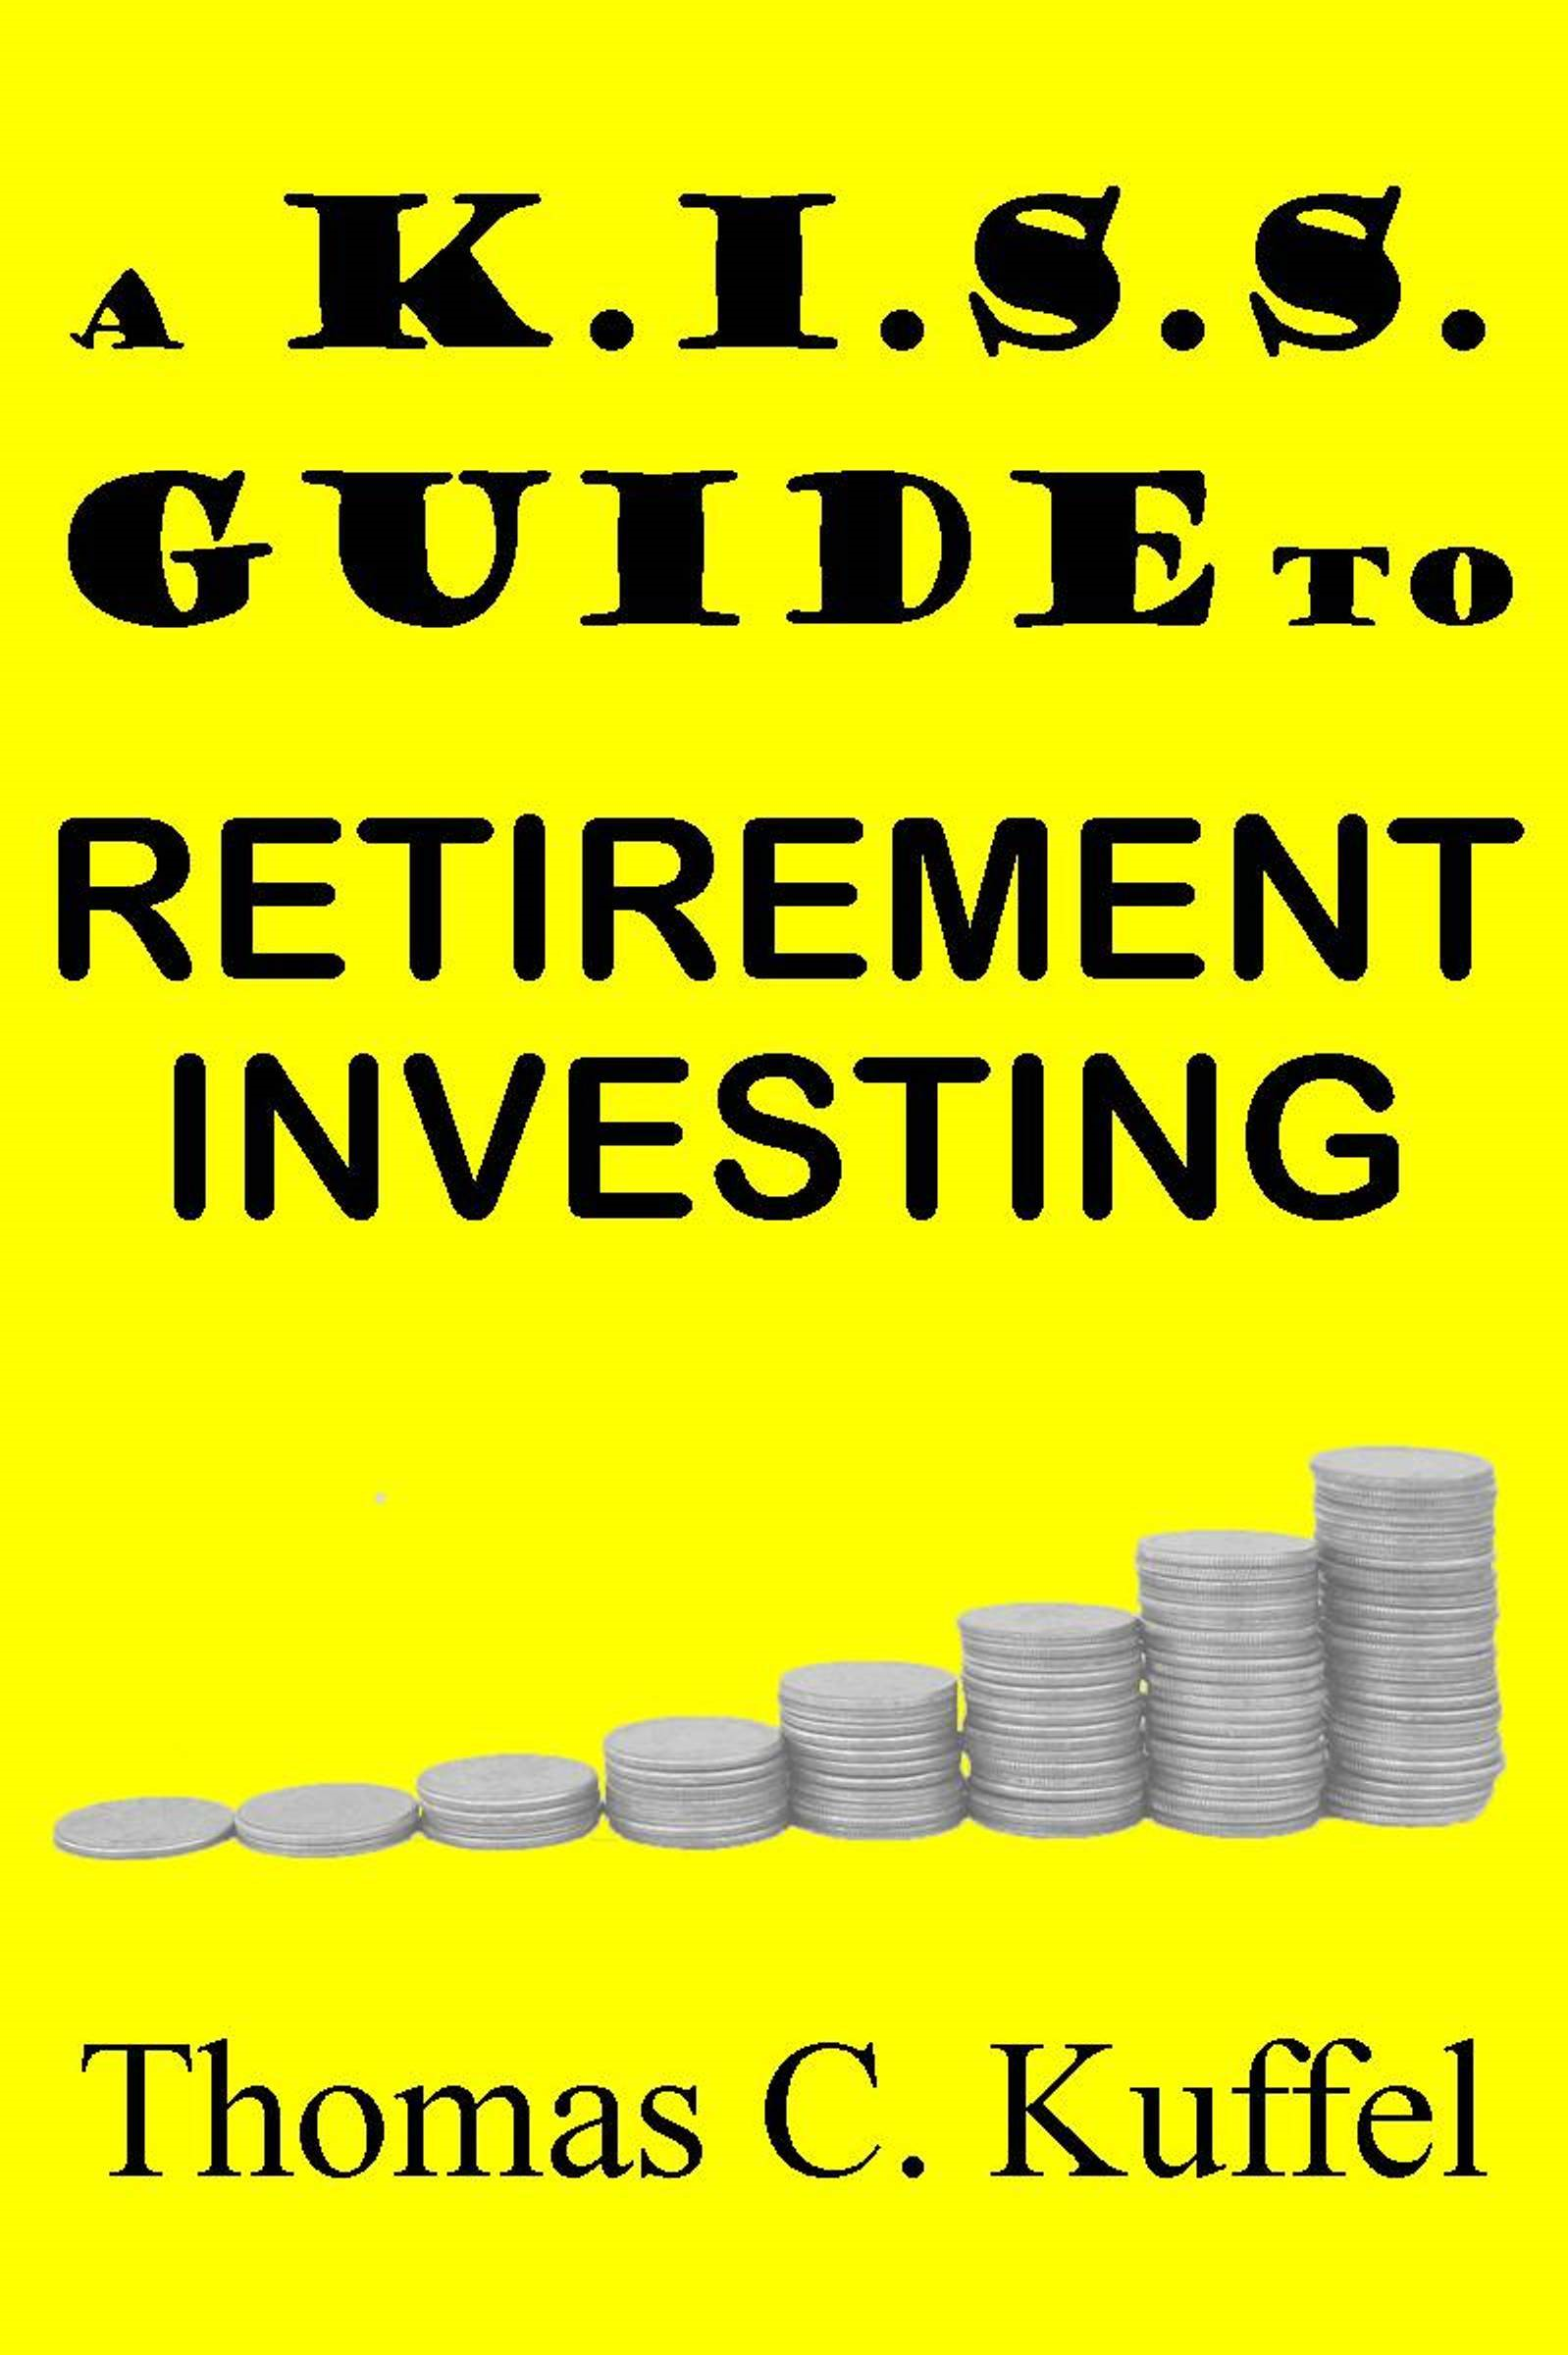 A K.I.S.S. Guide To Retirement Investing